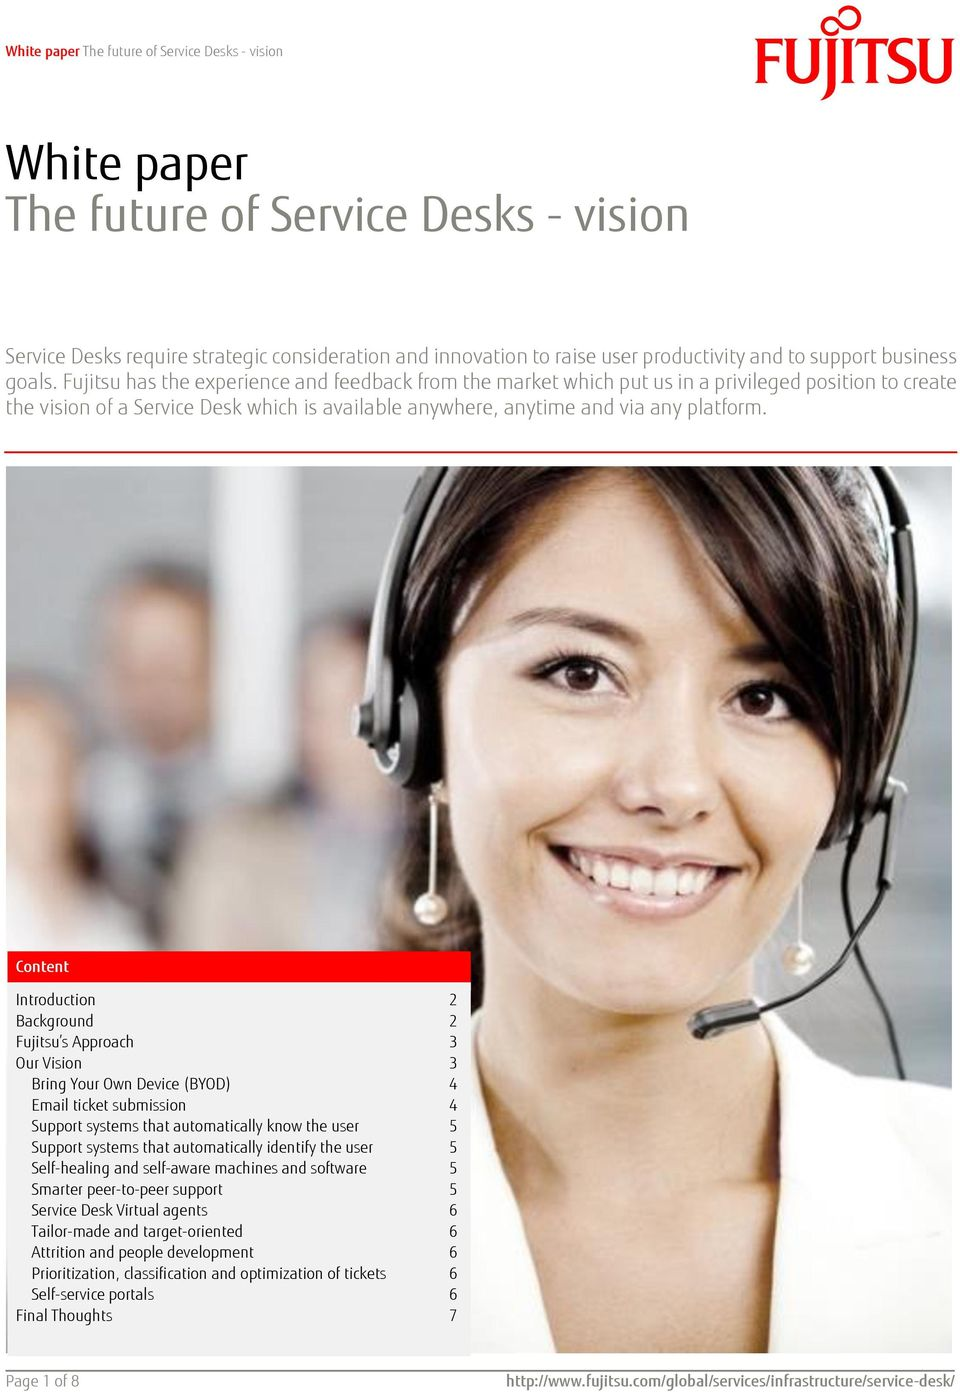 Content Introduction 2 Background 2 Fujitsu s Approach 3 Our Vision 3 Bring Your Own Device (BYOD) 4 Email ticket submission 4 Support systems that automatically know the user 5 Support systems that